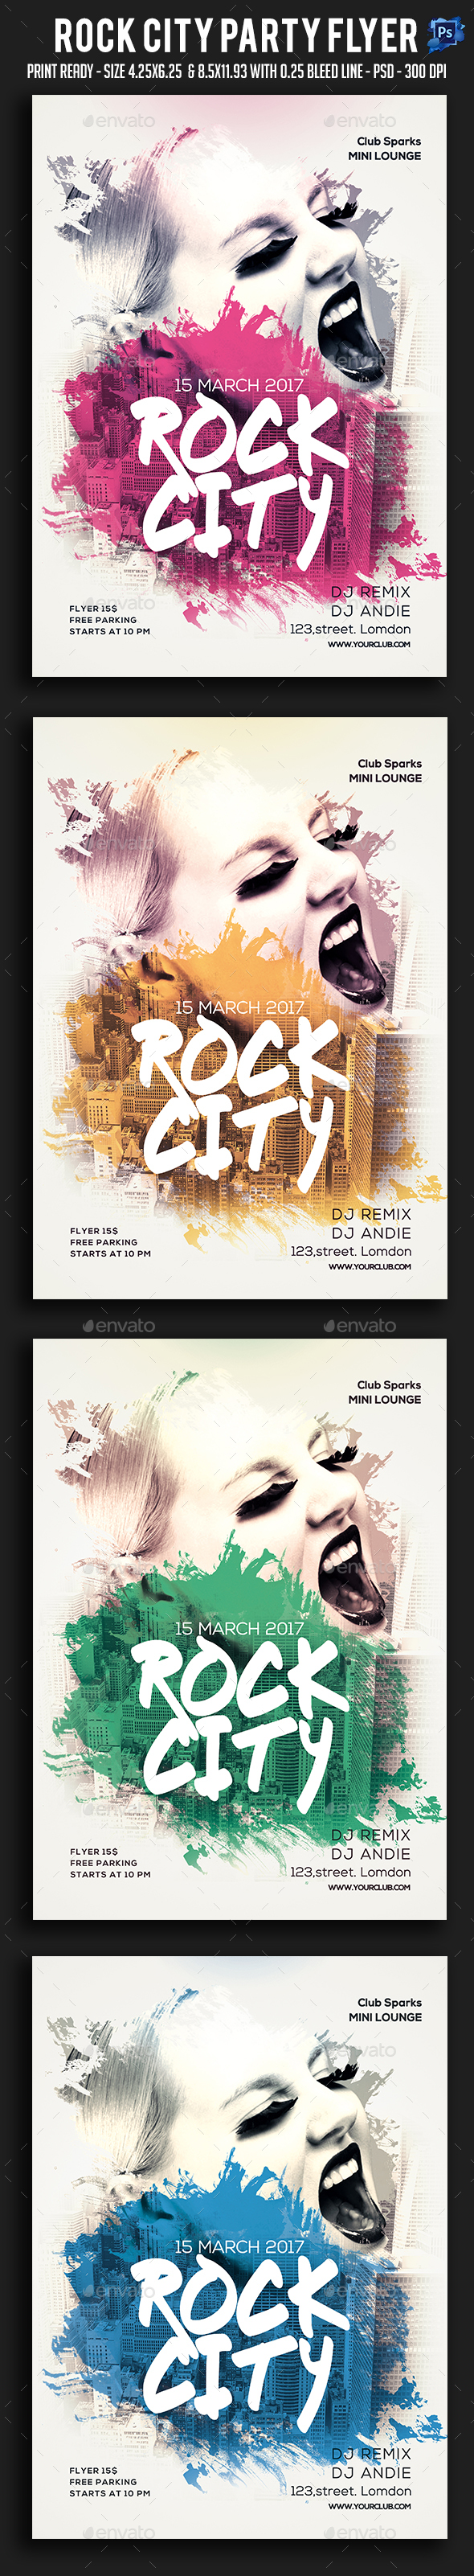 Rock City Party Flyer - Clubs & Parties Events